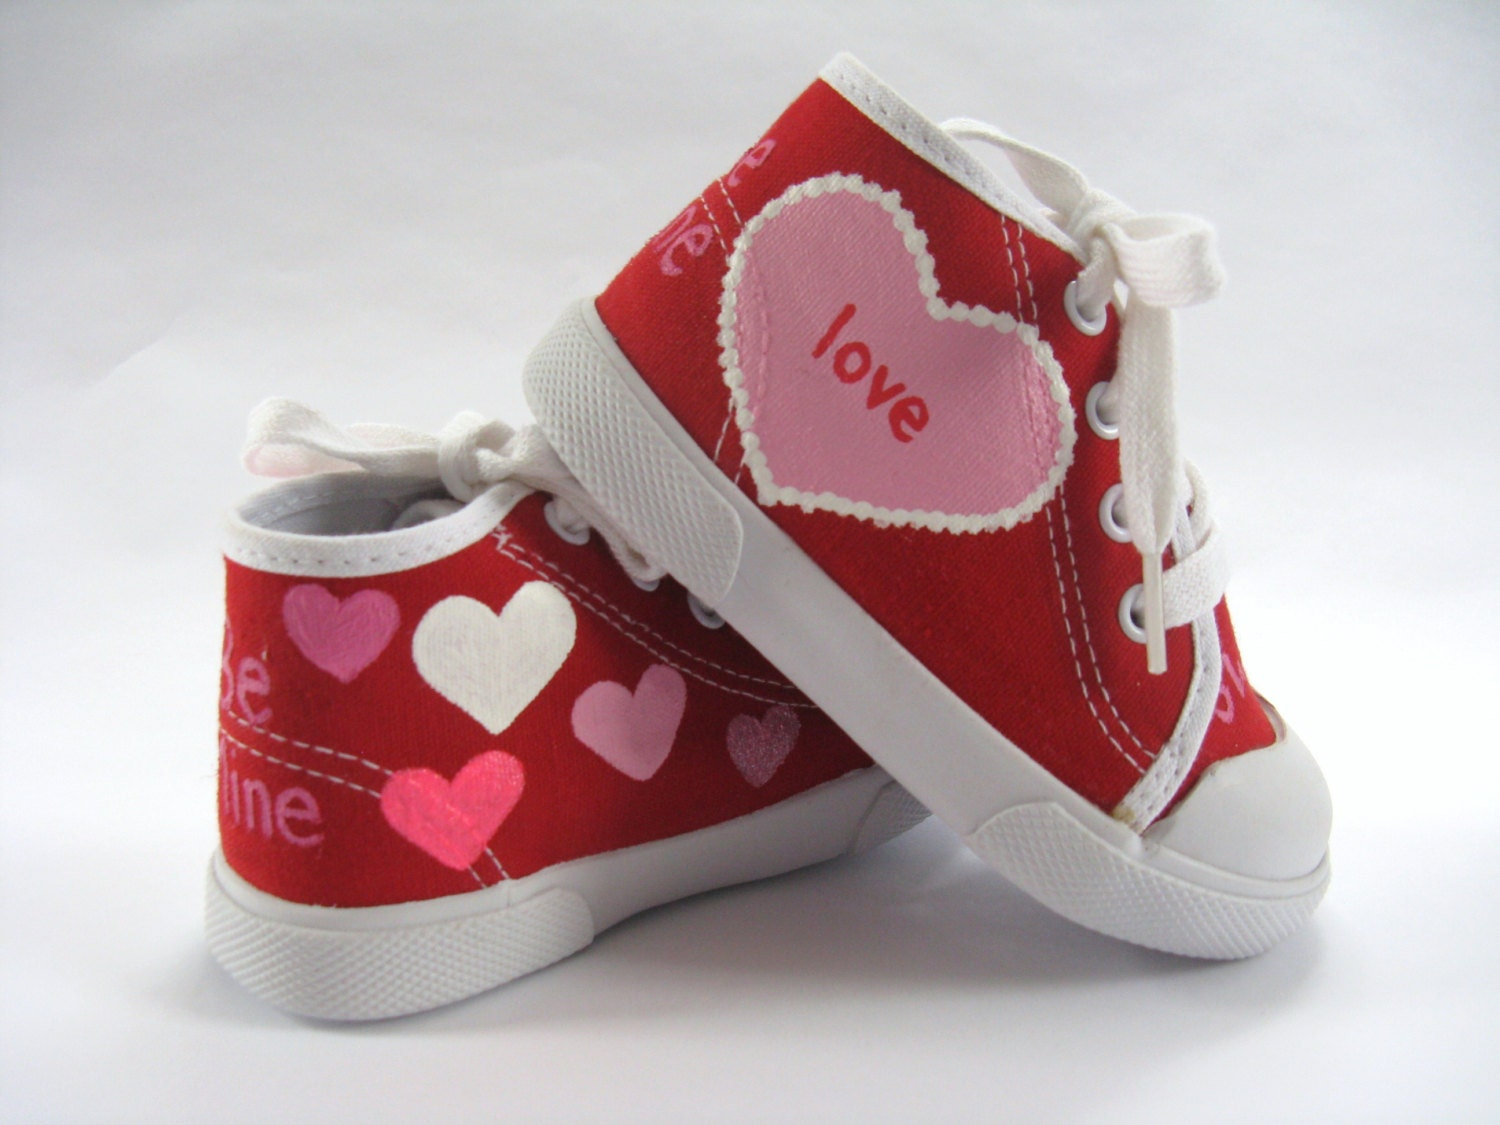 Valentine Heart Sneakers Shoes, Red Hi Top Sneakers Heart Hand Painted for Baby or Toddler's Pink and Red Valentine's Day Outfit 3bb190